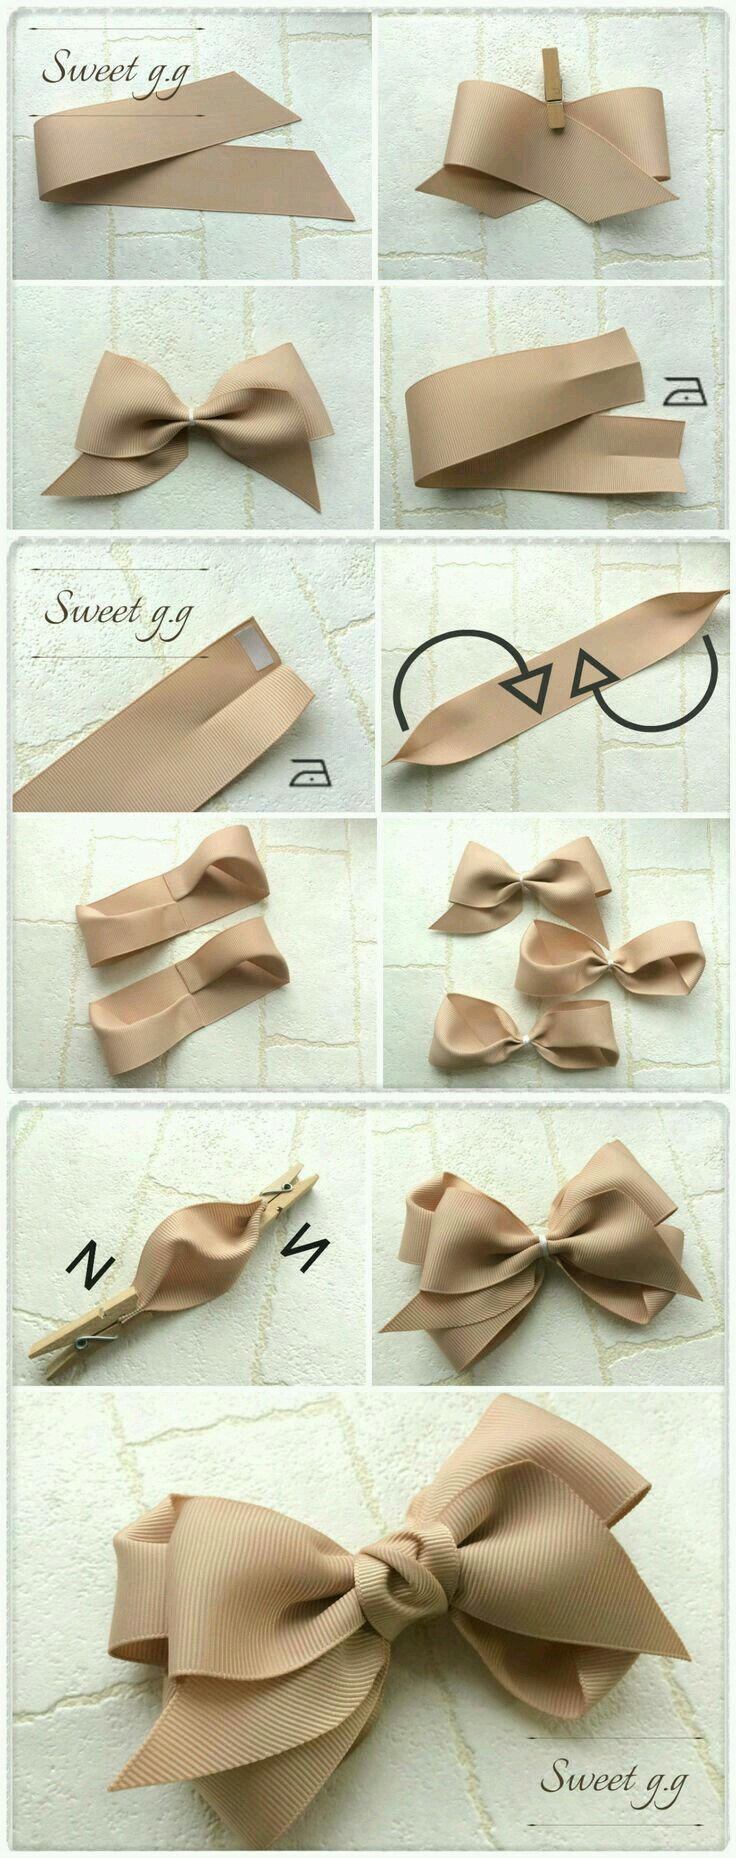 How to make a gorgeous bow for party decoration and gift wrapping. Can also be used for baby headbands and hairclips! How to make a gorgeous bow for party decoration and gift wrapping. Can also be used for baby headbands and hairclips!